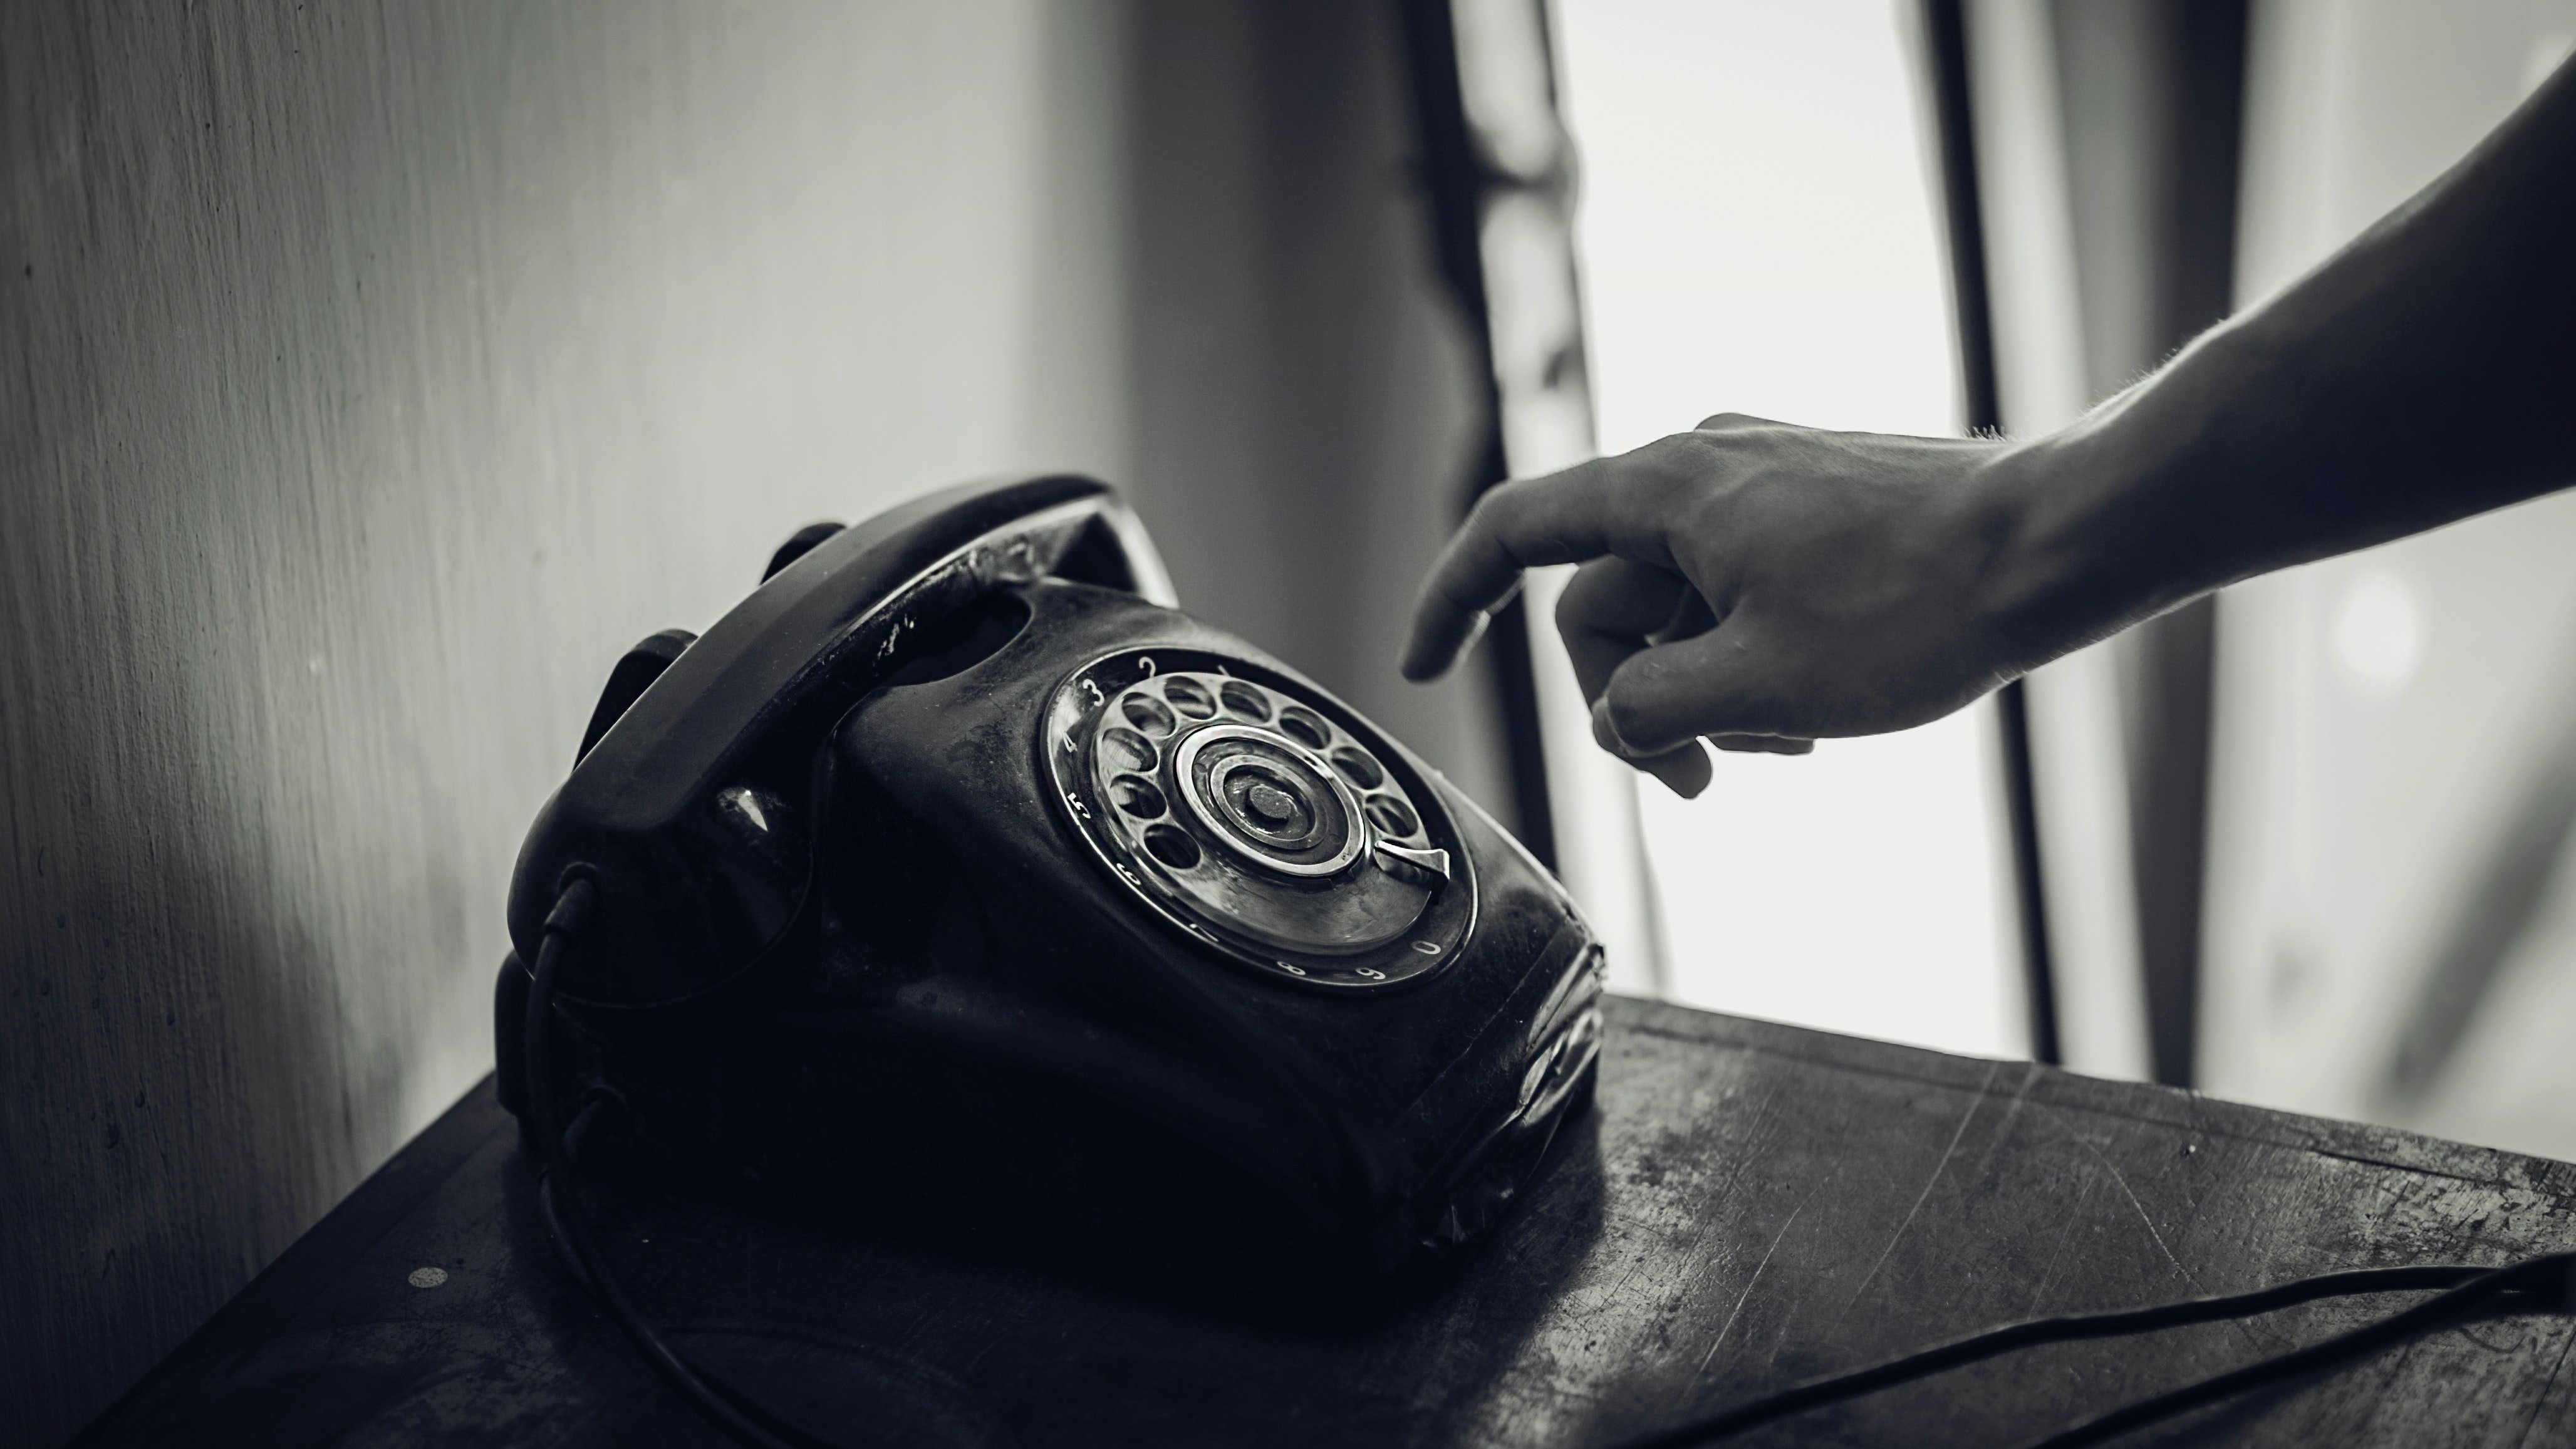 The phone started ringing in Olga's new flat | Source: Pexels